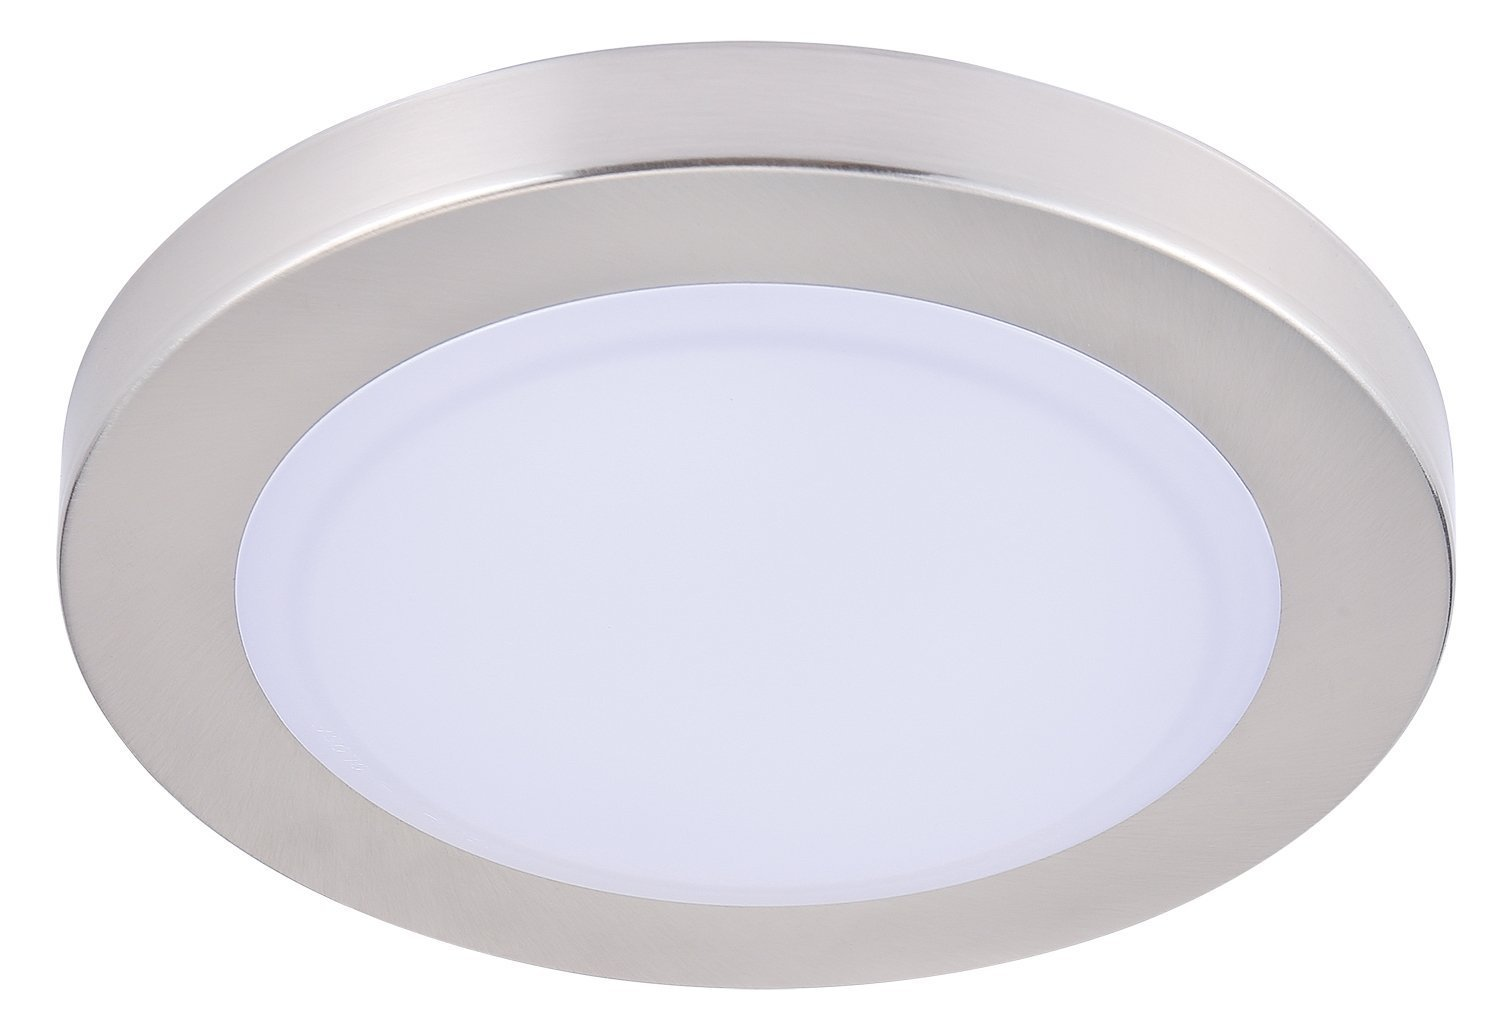 Cloudy Bay 7.5 inch LED Mini Flush Mount Ceiling Light 5000K Day Light Dimmable 12W 840lm -100W Incandescent Fixture Equivalent,LED Flush Mount for Bathroom Hallway Entry, Wet Location